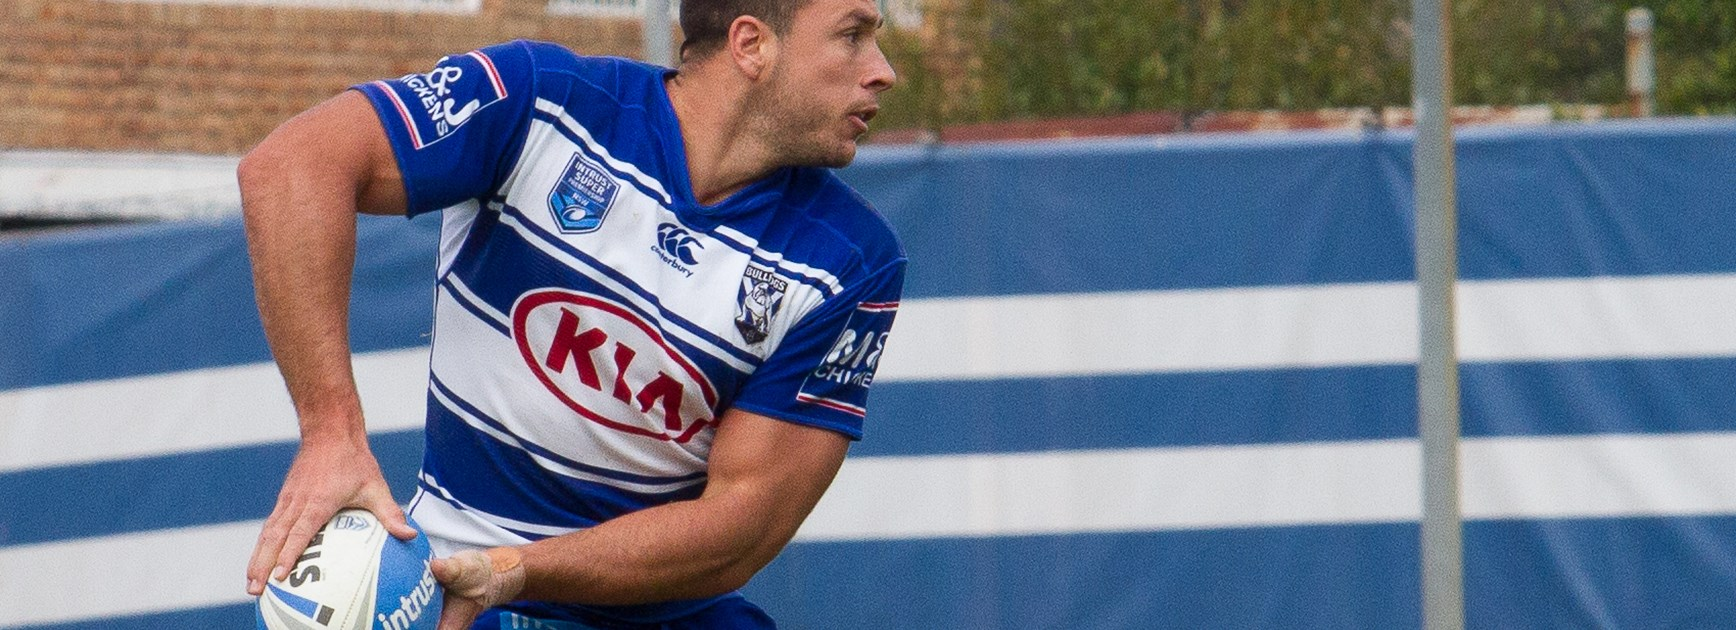 Bulldogs defeat Newcastle Knights at North Sydney Oval